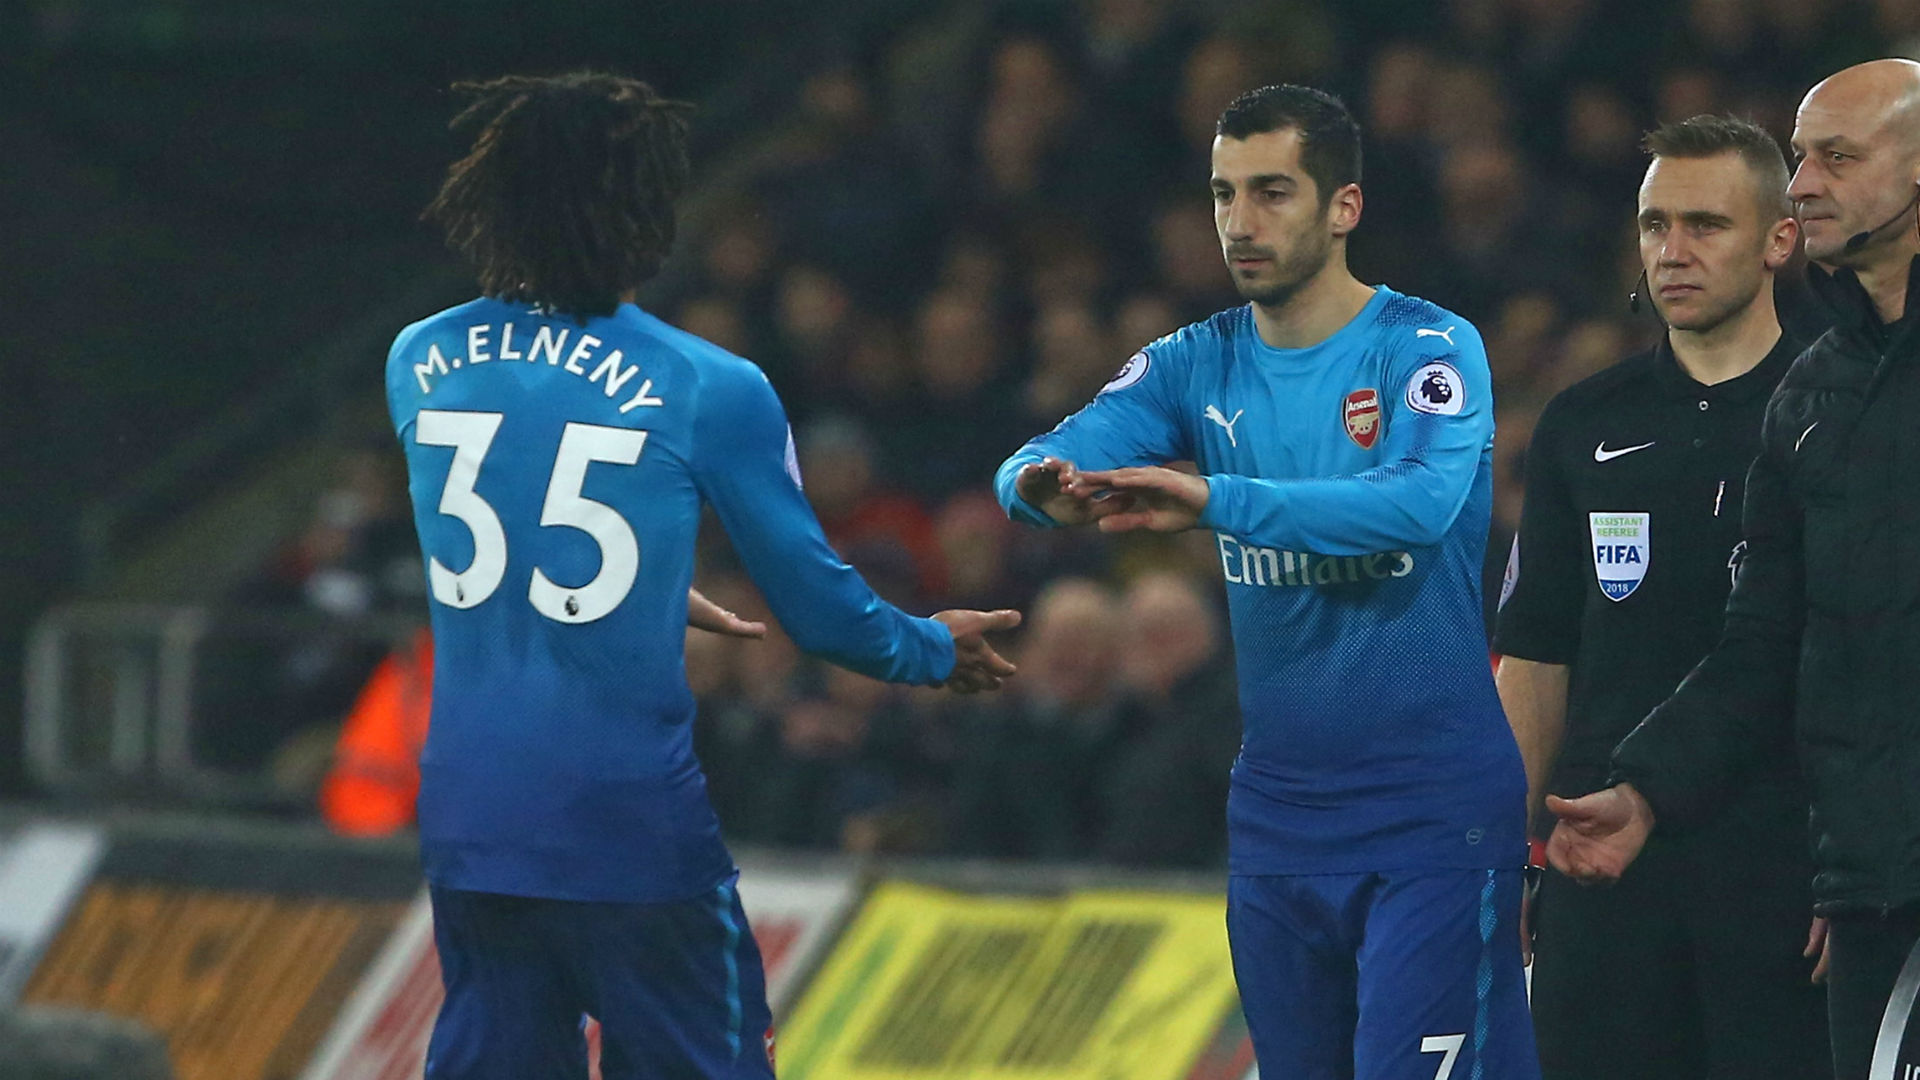 Henrikh Mkhitaryan Arsenal Premier League